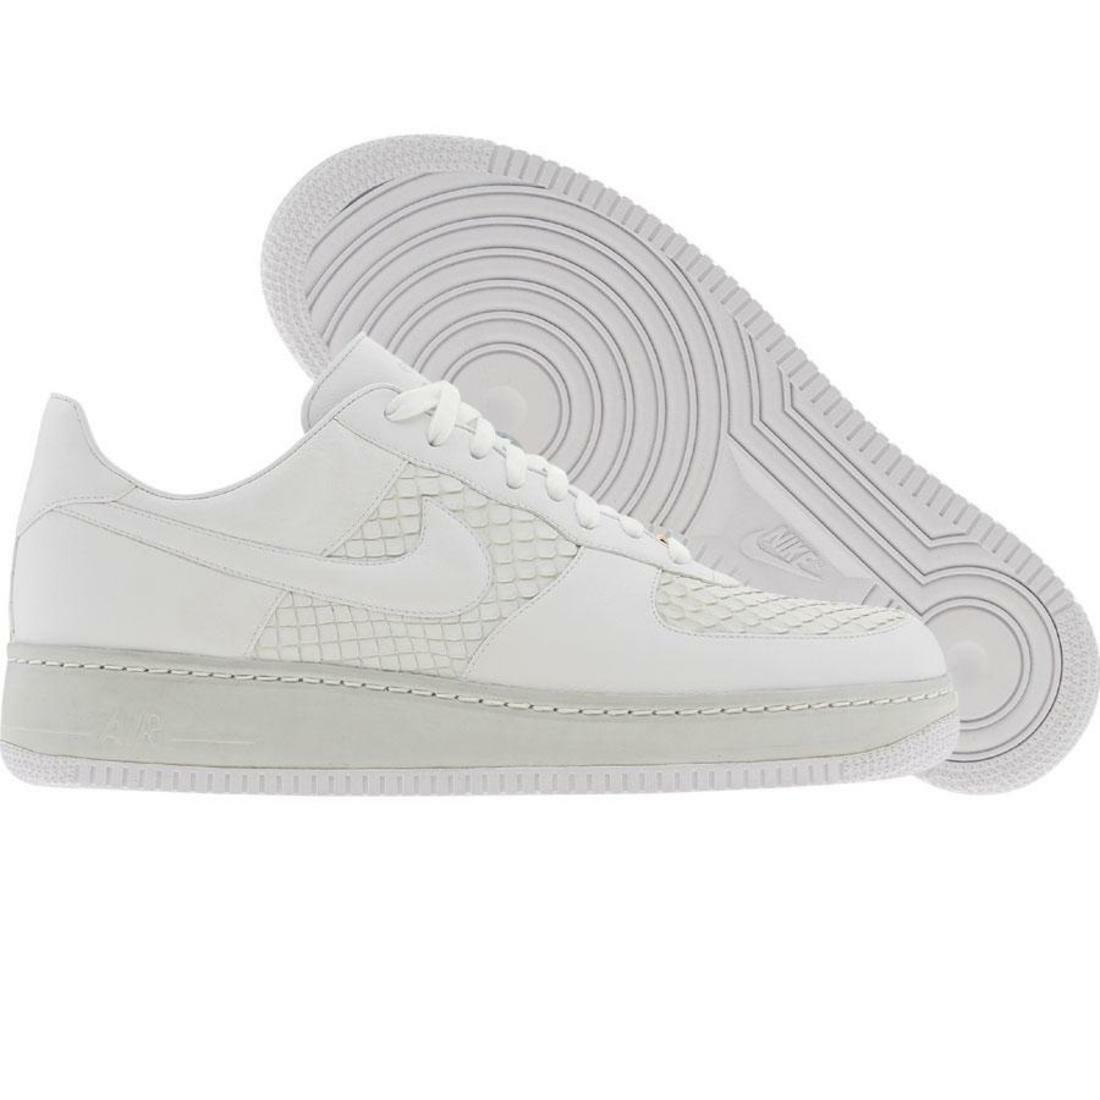 NEW NIKE AIR FORCE 1 ONE i LUX 07 25 SZ US 13 ANACONDA